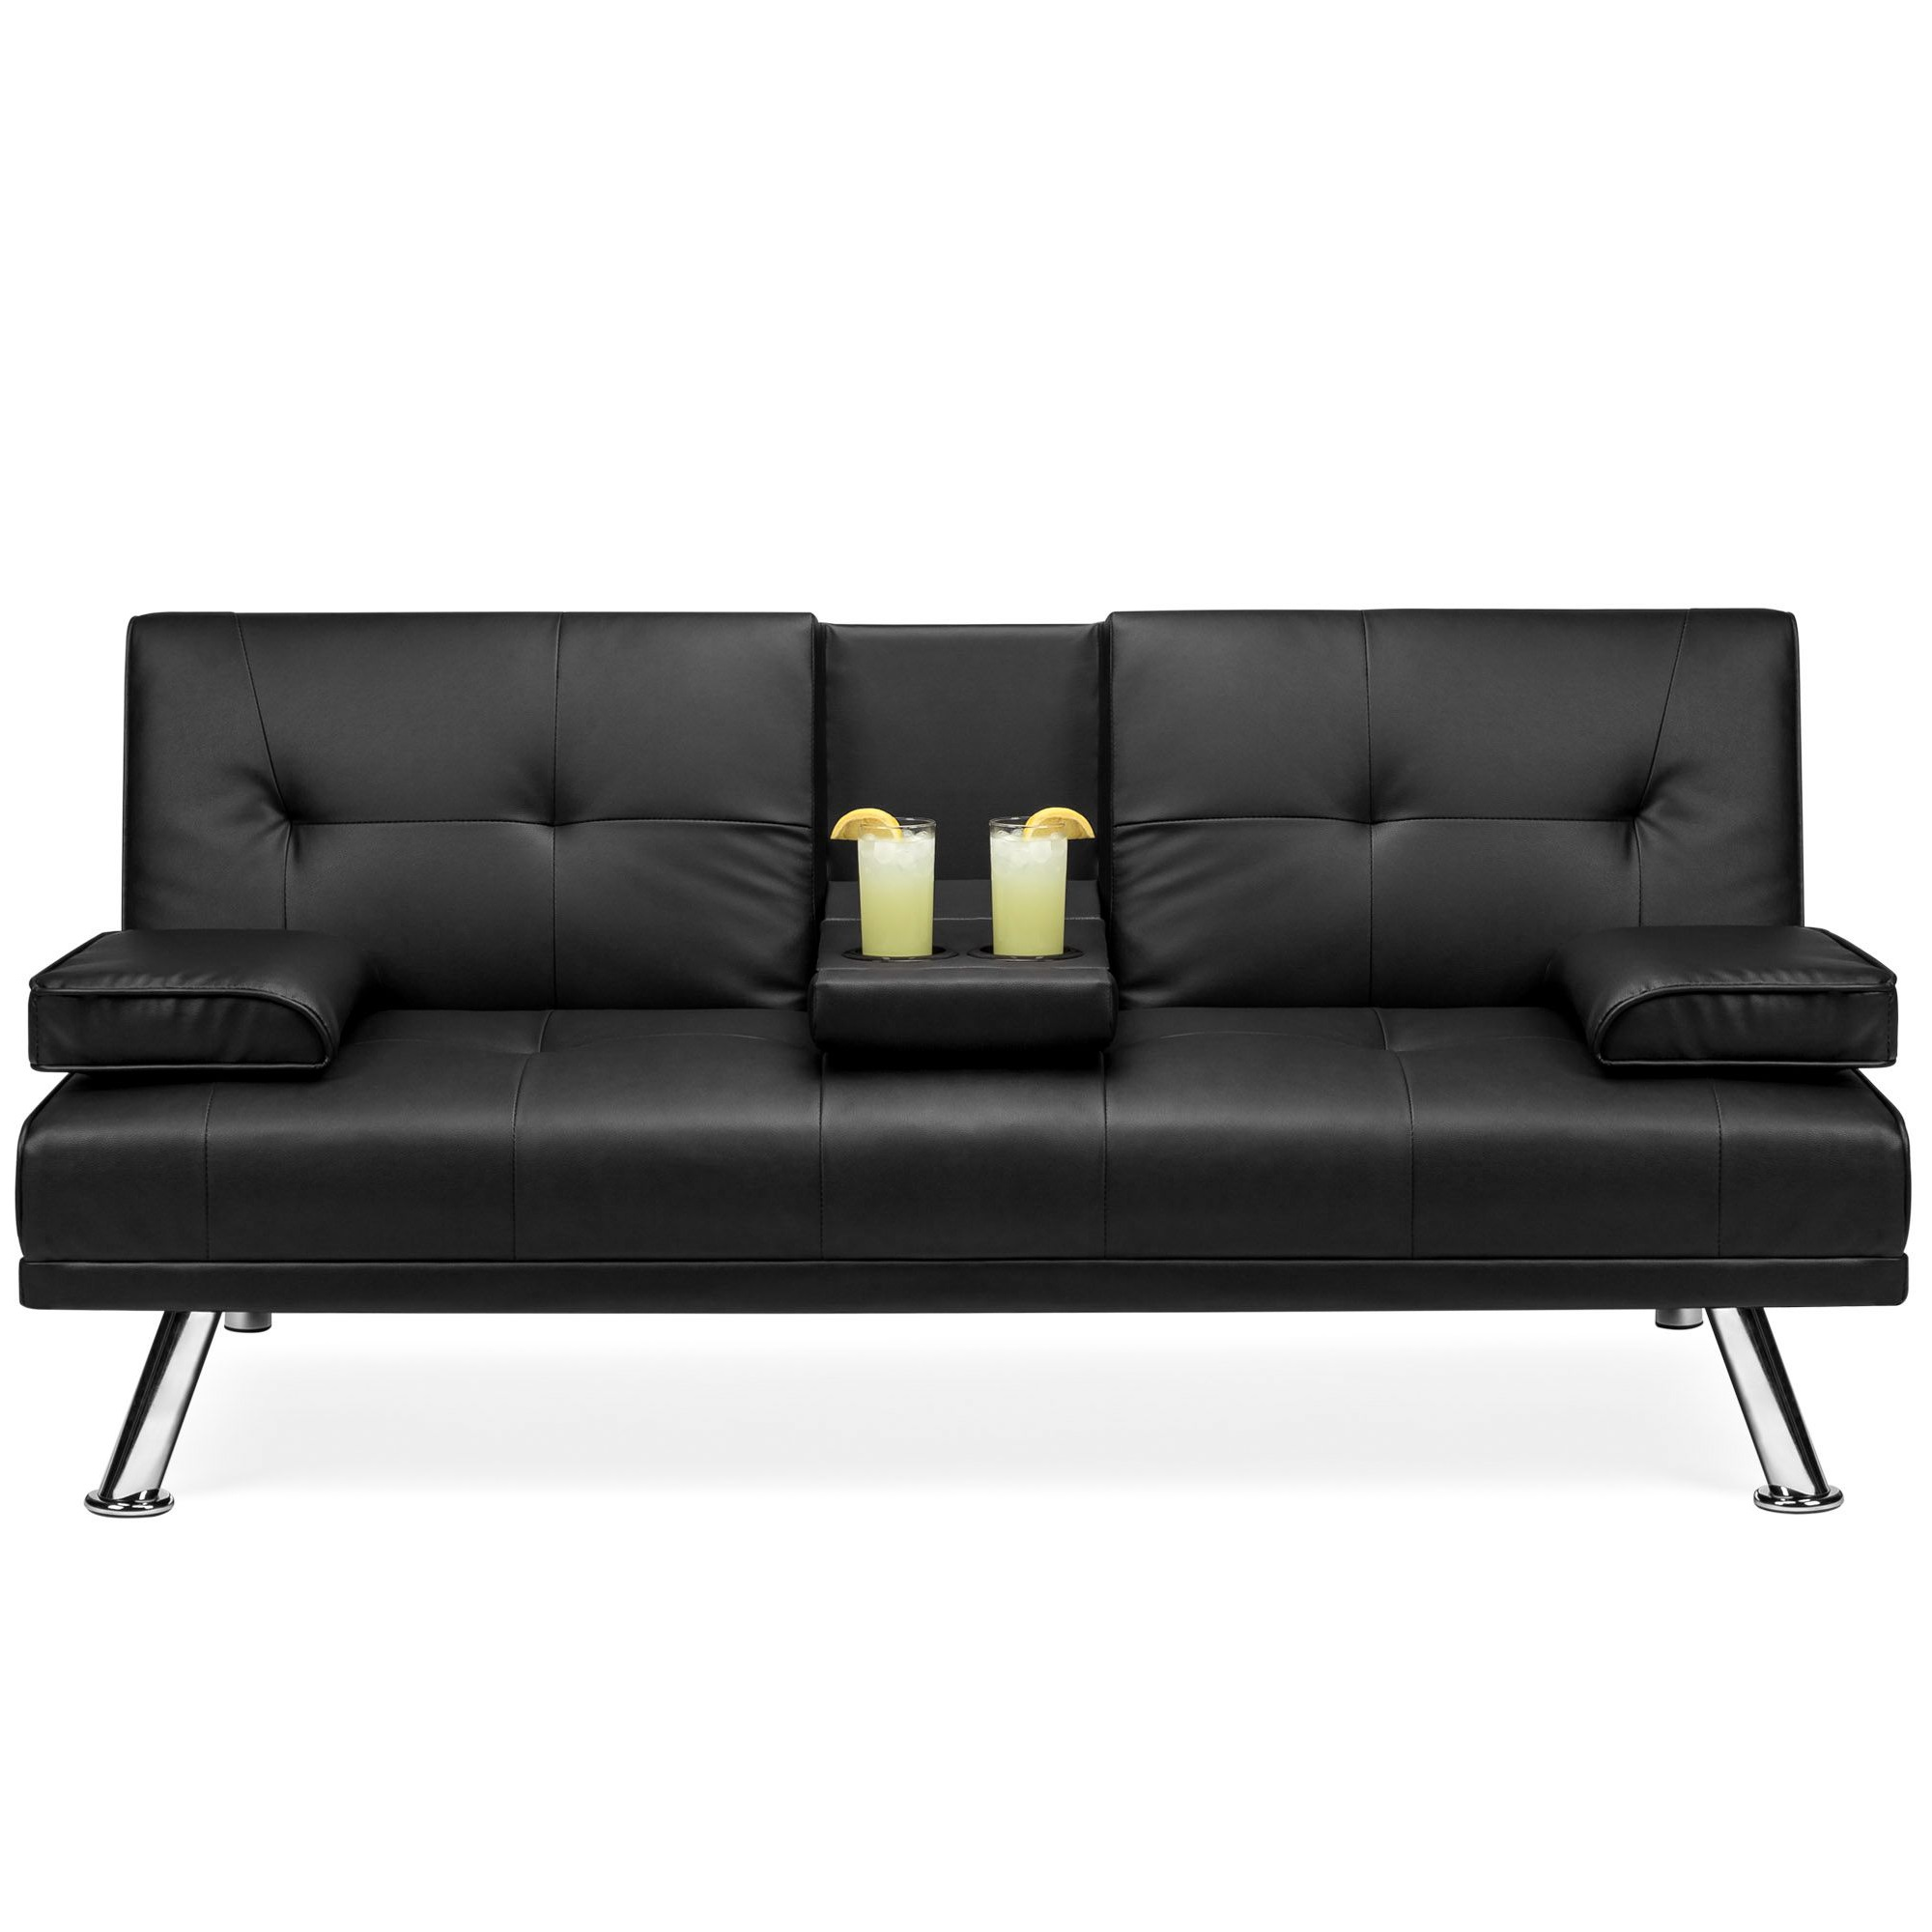 Best Choice Products Modern Faux Leather Convertible Futon Sofa W Removable Armrests Metal Legs 2 Cupholders Black Walmart Com Walmart Com